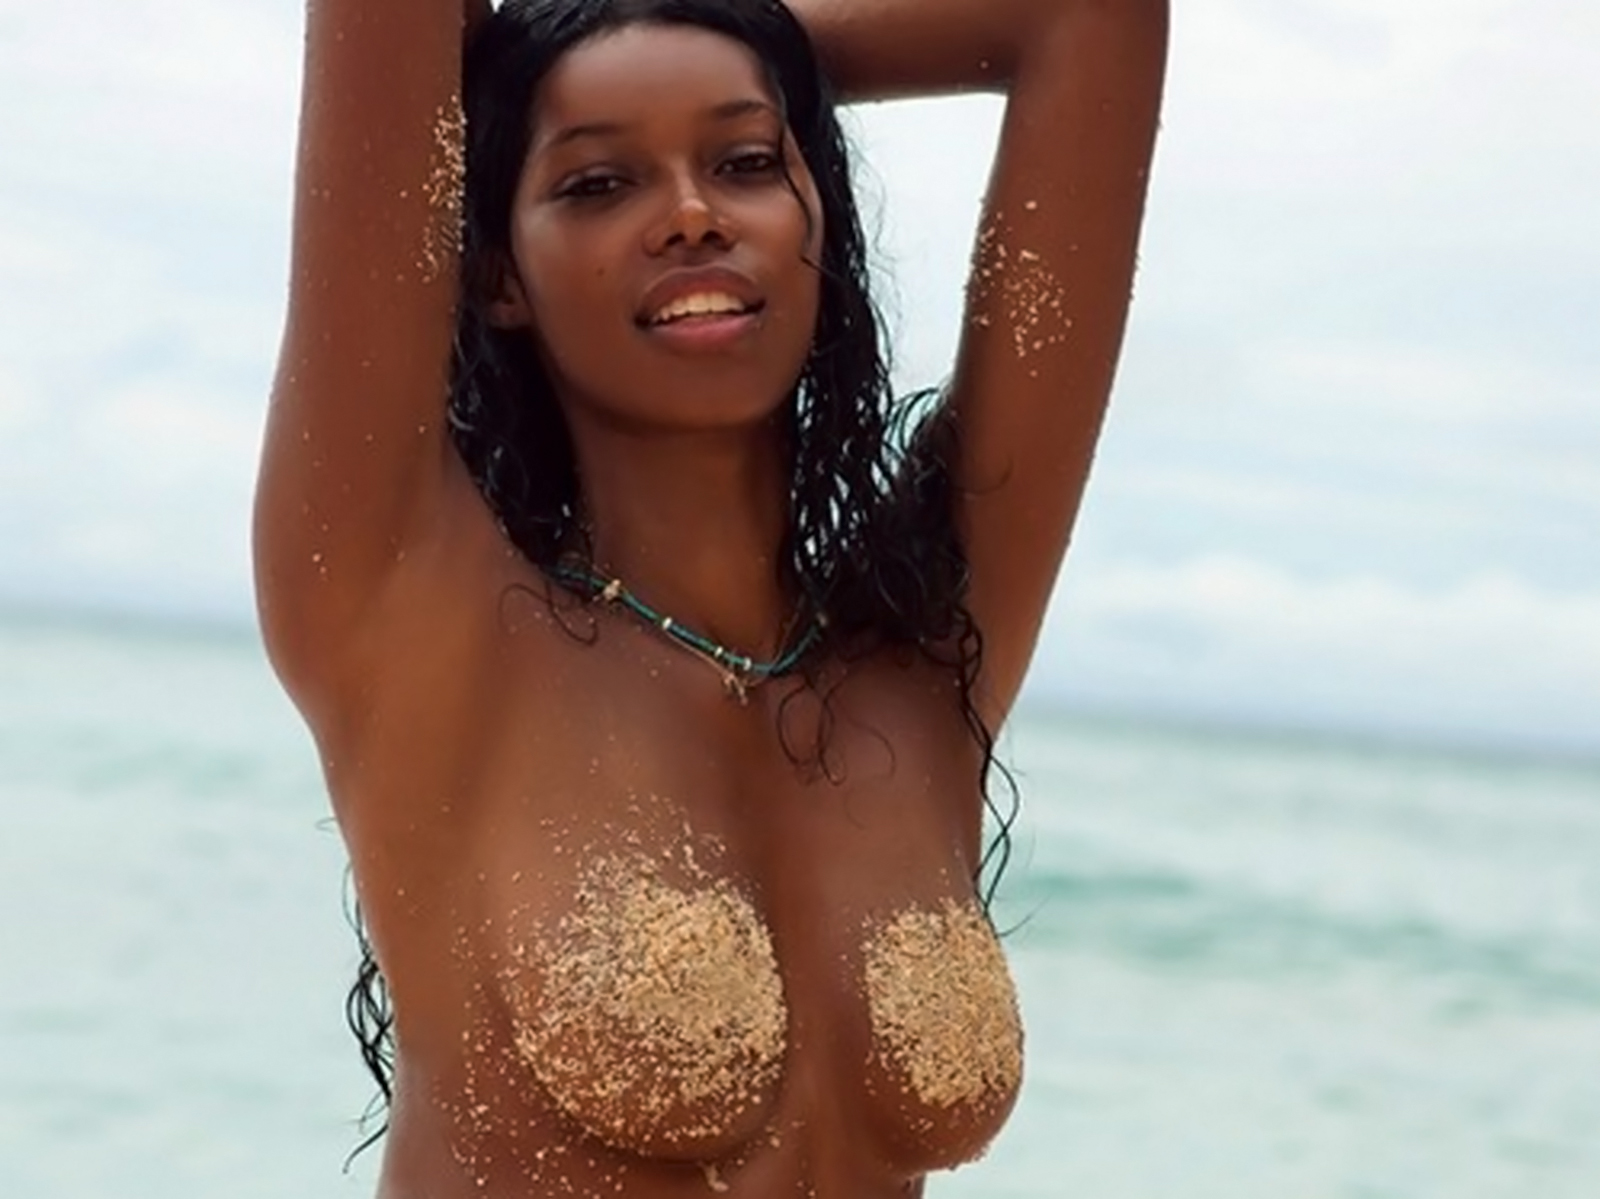 http://1.bp.blogspot.com/-mfhOwoA3JYU/TWJX0UR5ziI/AAAAAAAAA60/tqKbn69nzcw/s1600/Jessica_White_topless_Sports_Illustrated_photoshoot_1.jpg